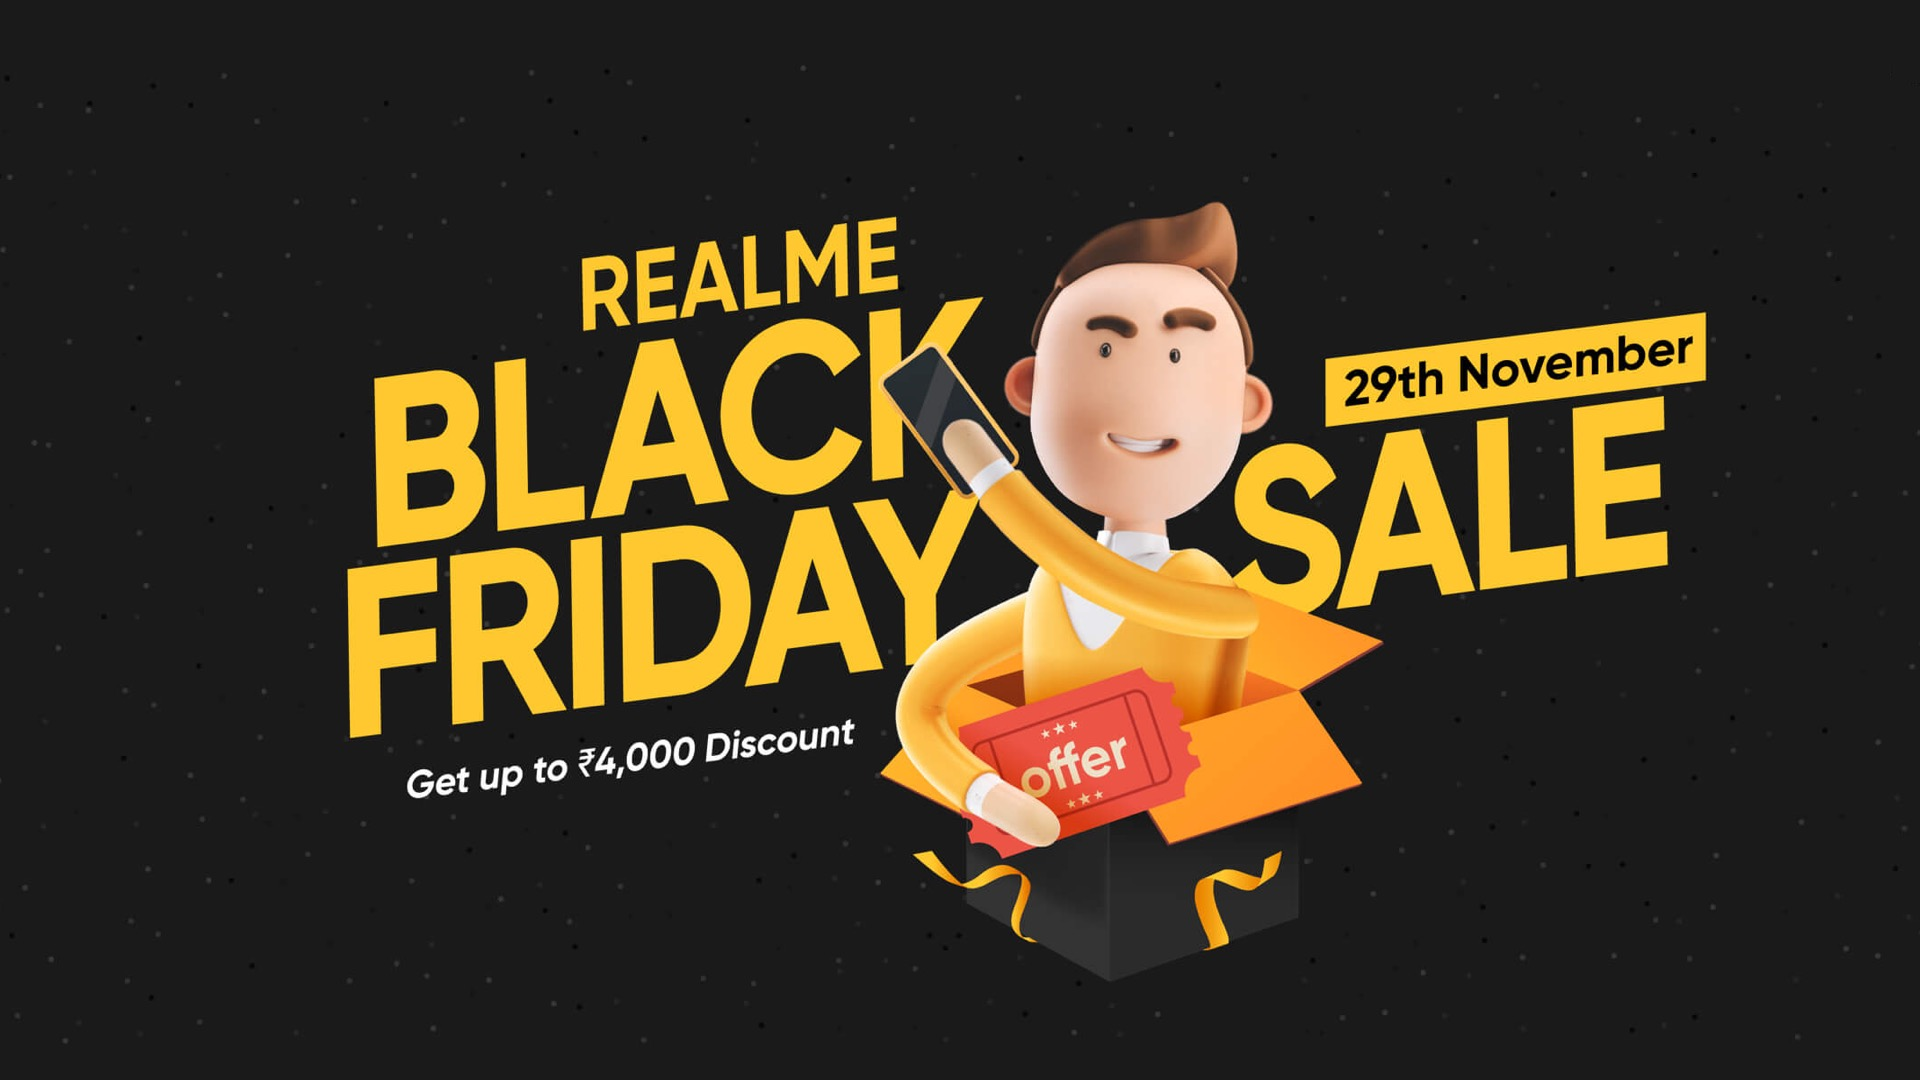 Realme India Black Friday sale: Realme X2 Pro to go on special open sale and other deals